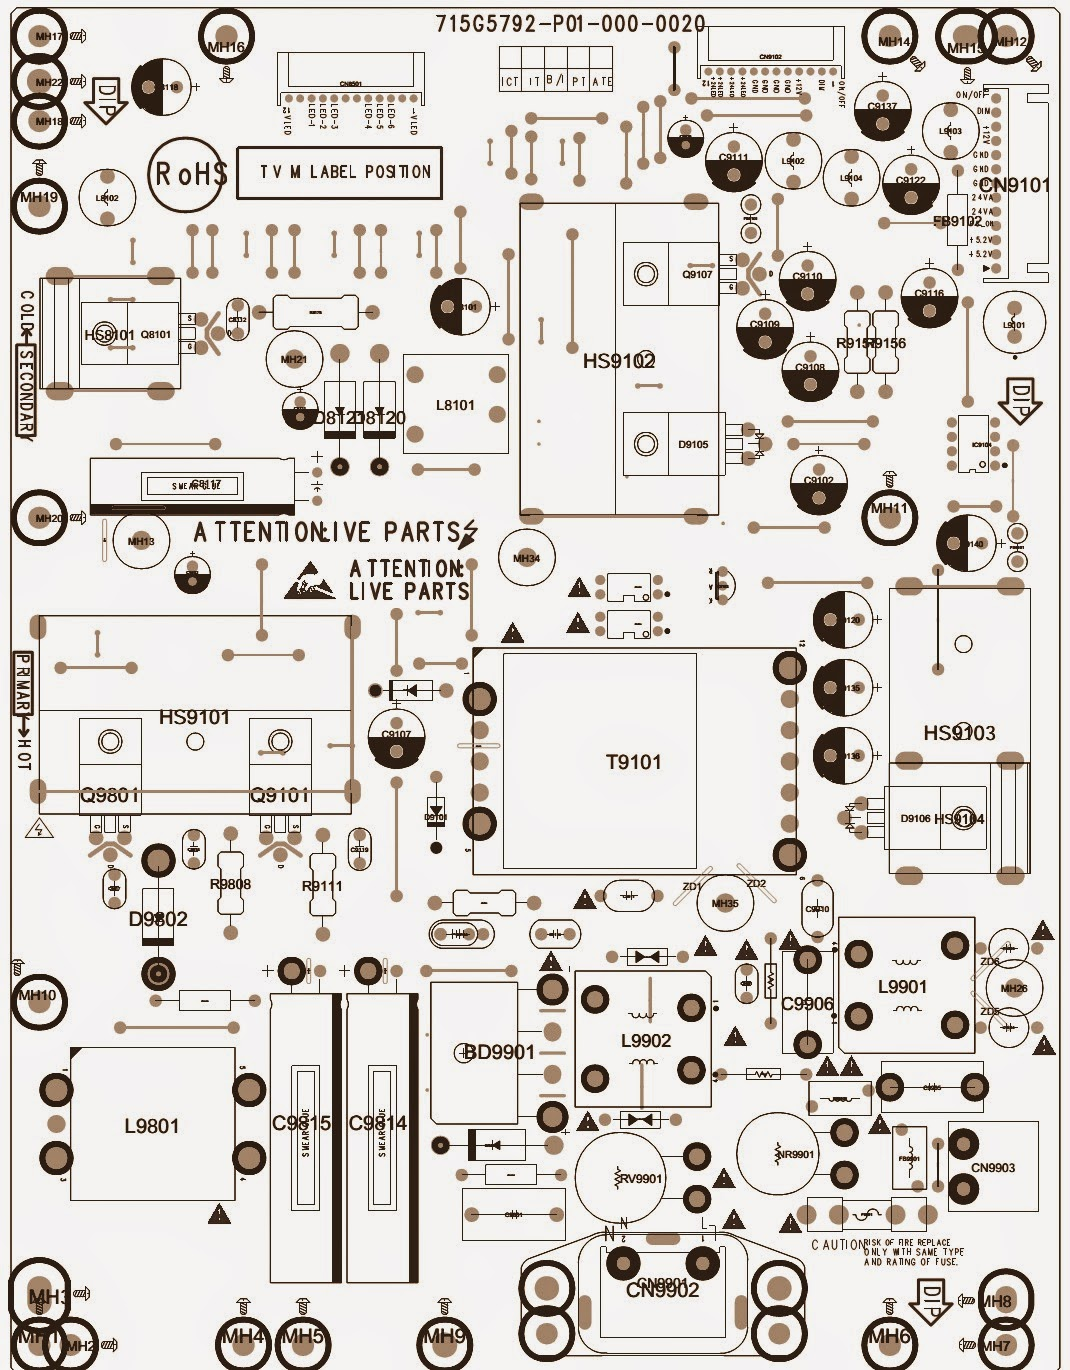 Philips Led Lcd Tv 32pfl3008d 39pfl300bd 46pfl3008d Power Phillips Drivers Wiring Diagram Driver Pcb Top Bottom Views